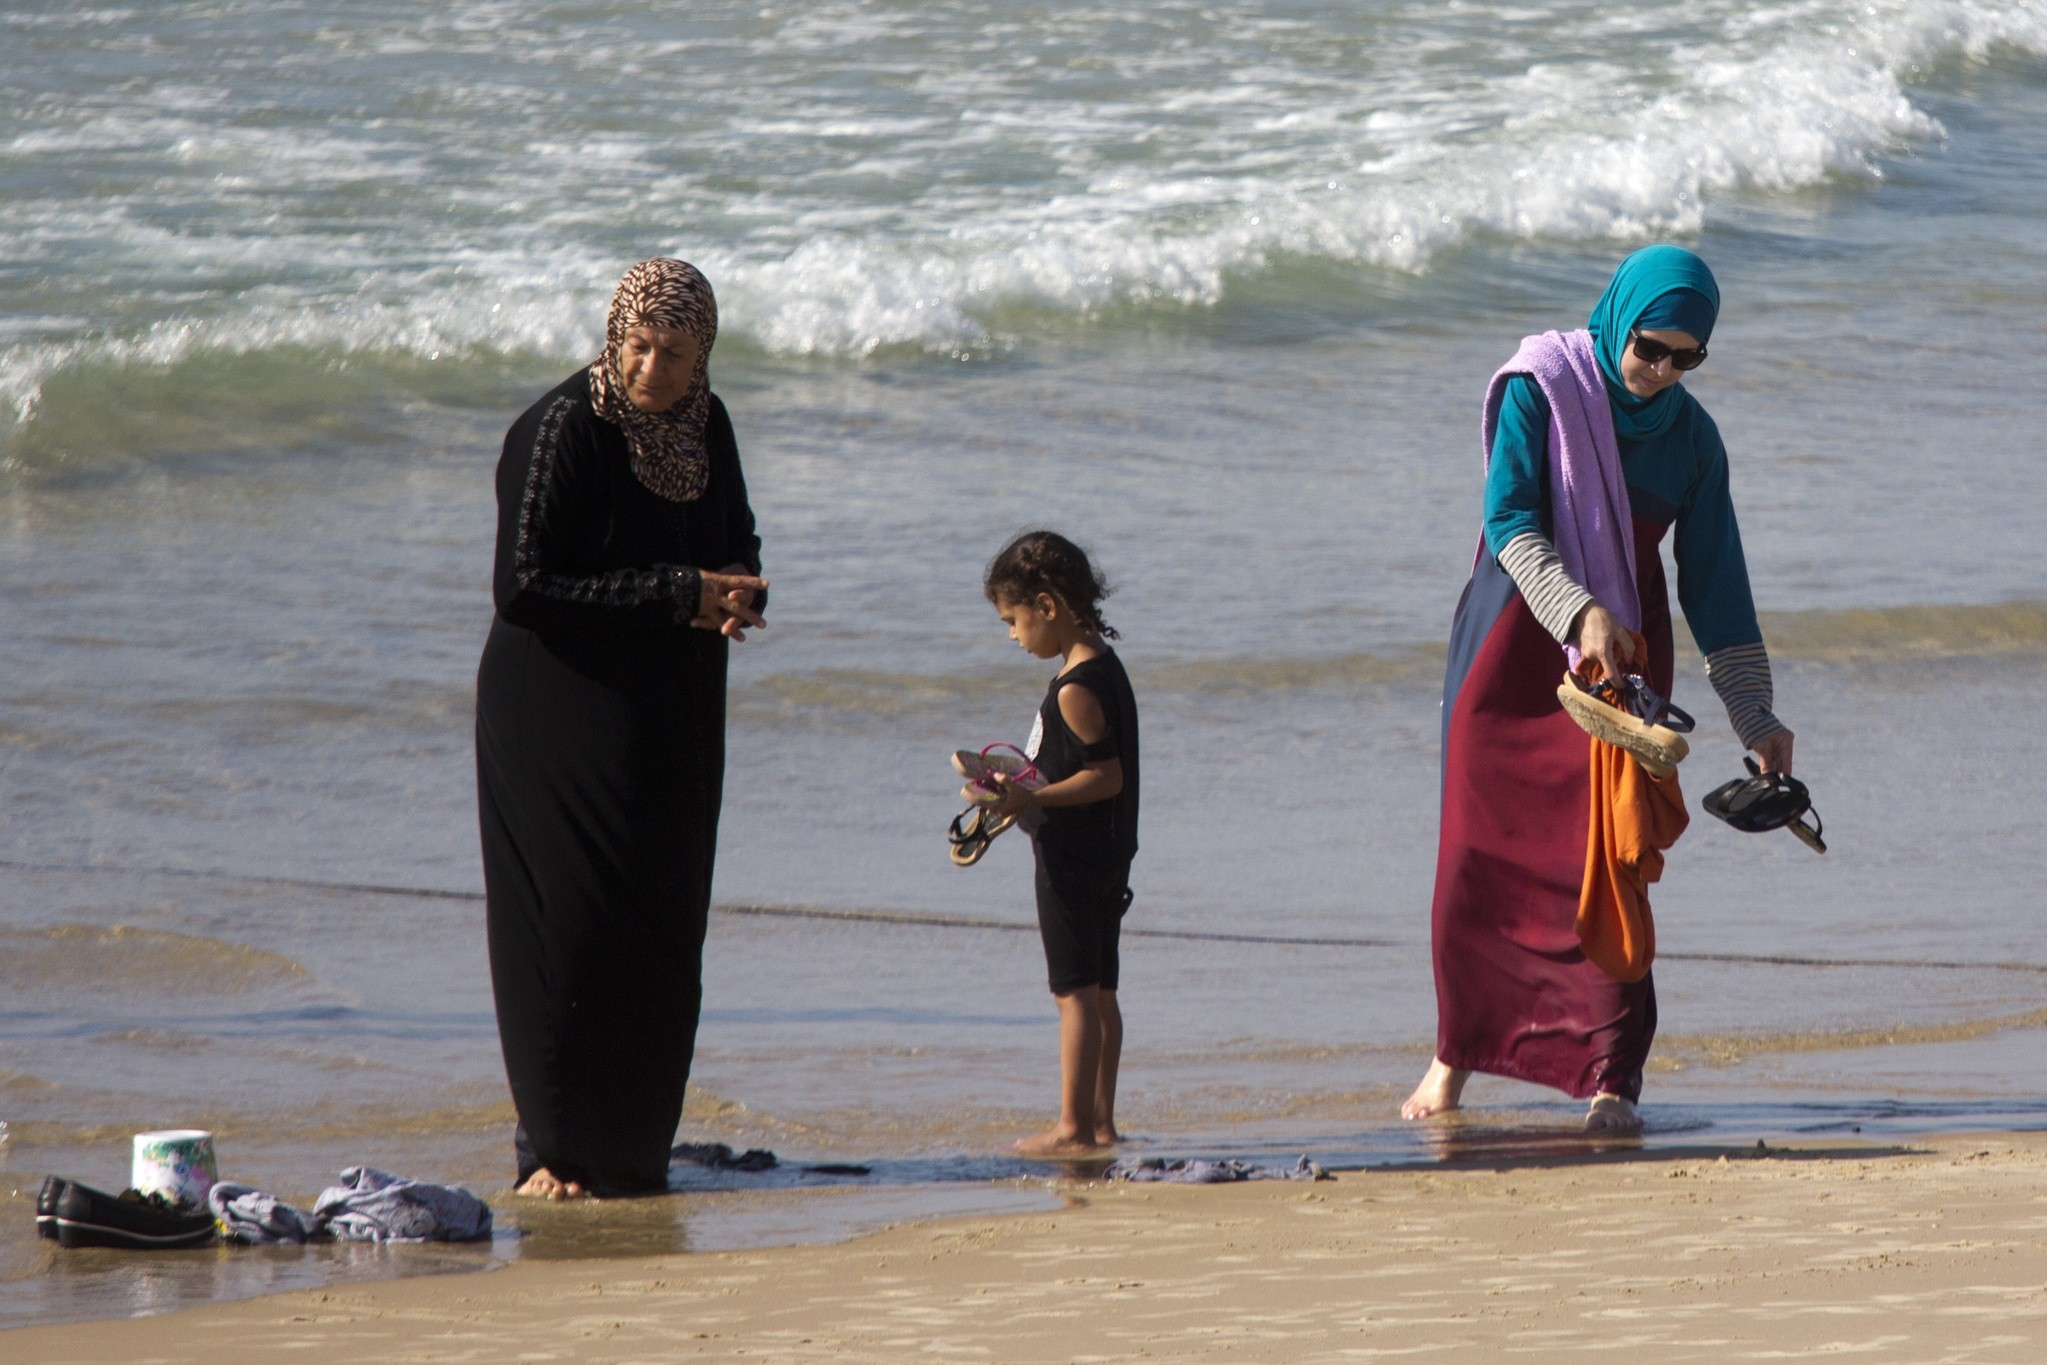 In this Friday, Sept. 2, 2016 photo, Muslim women stand at a beach in Tel Aviv, Israel. (AP Photo)